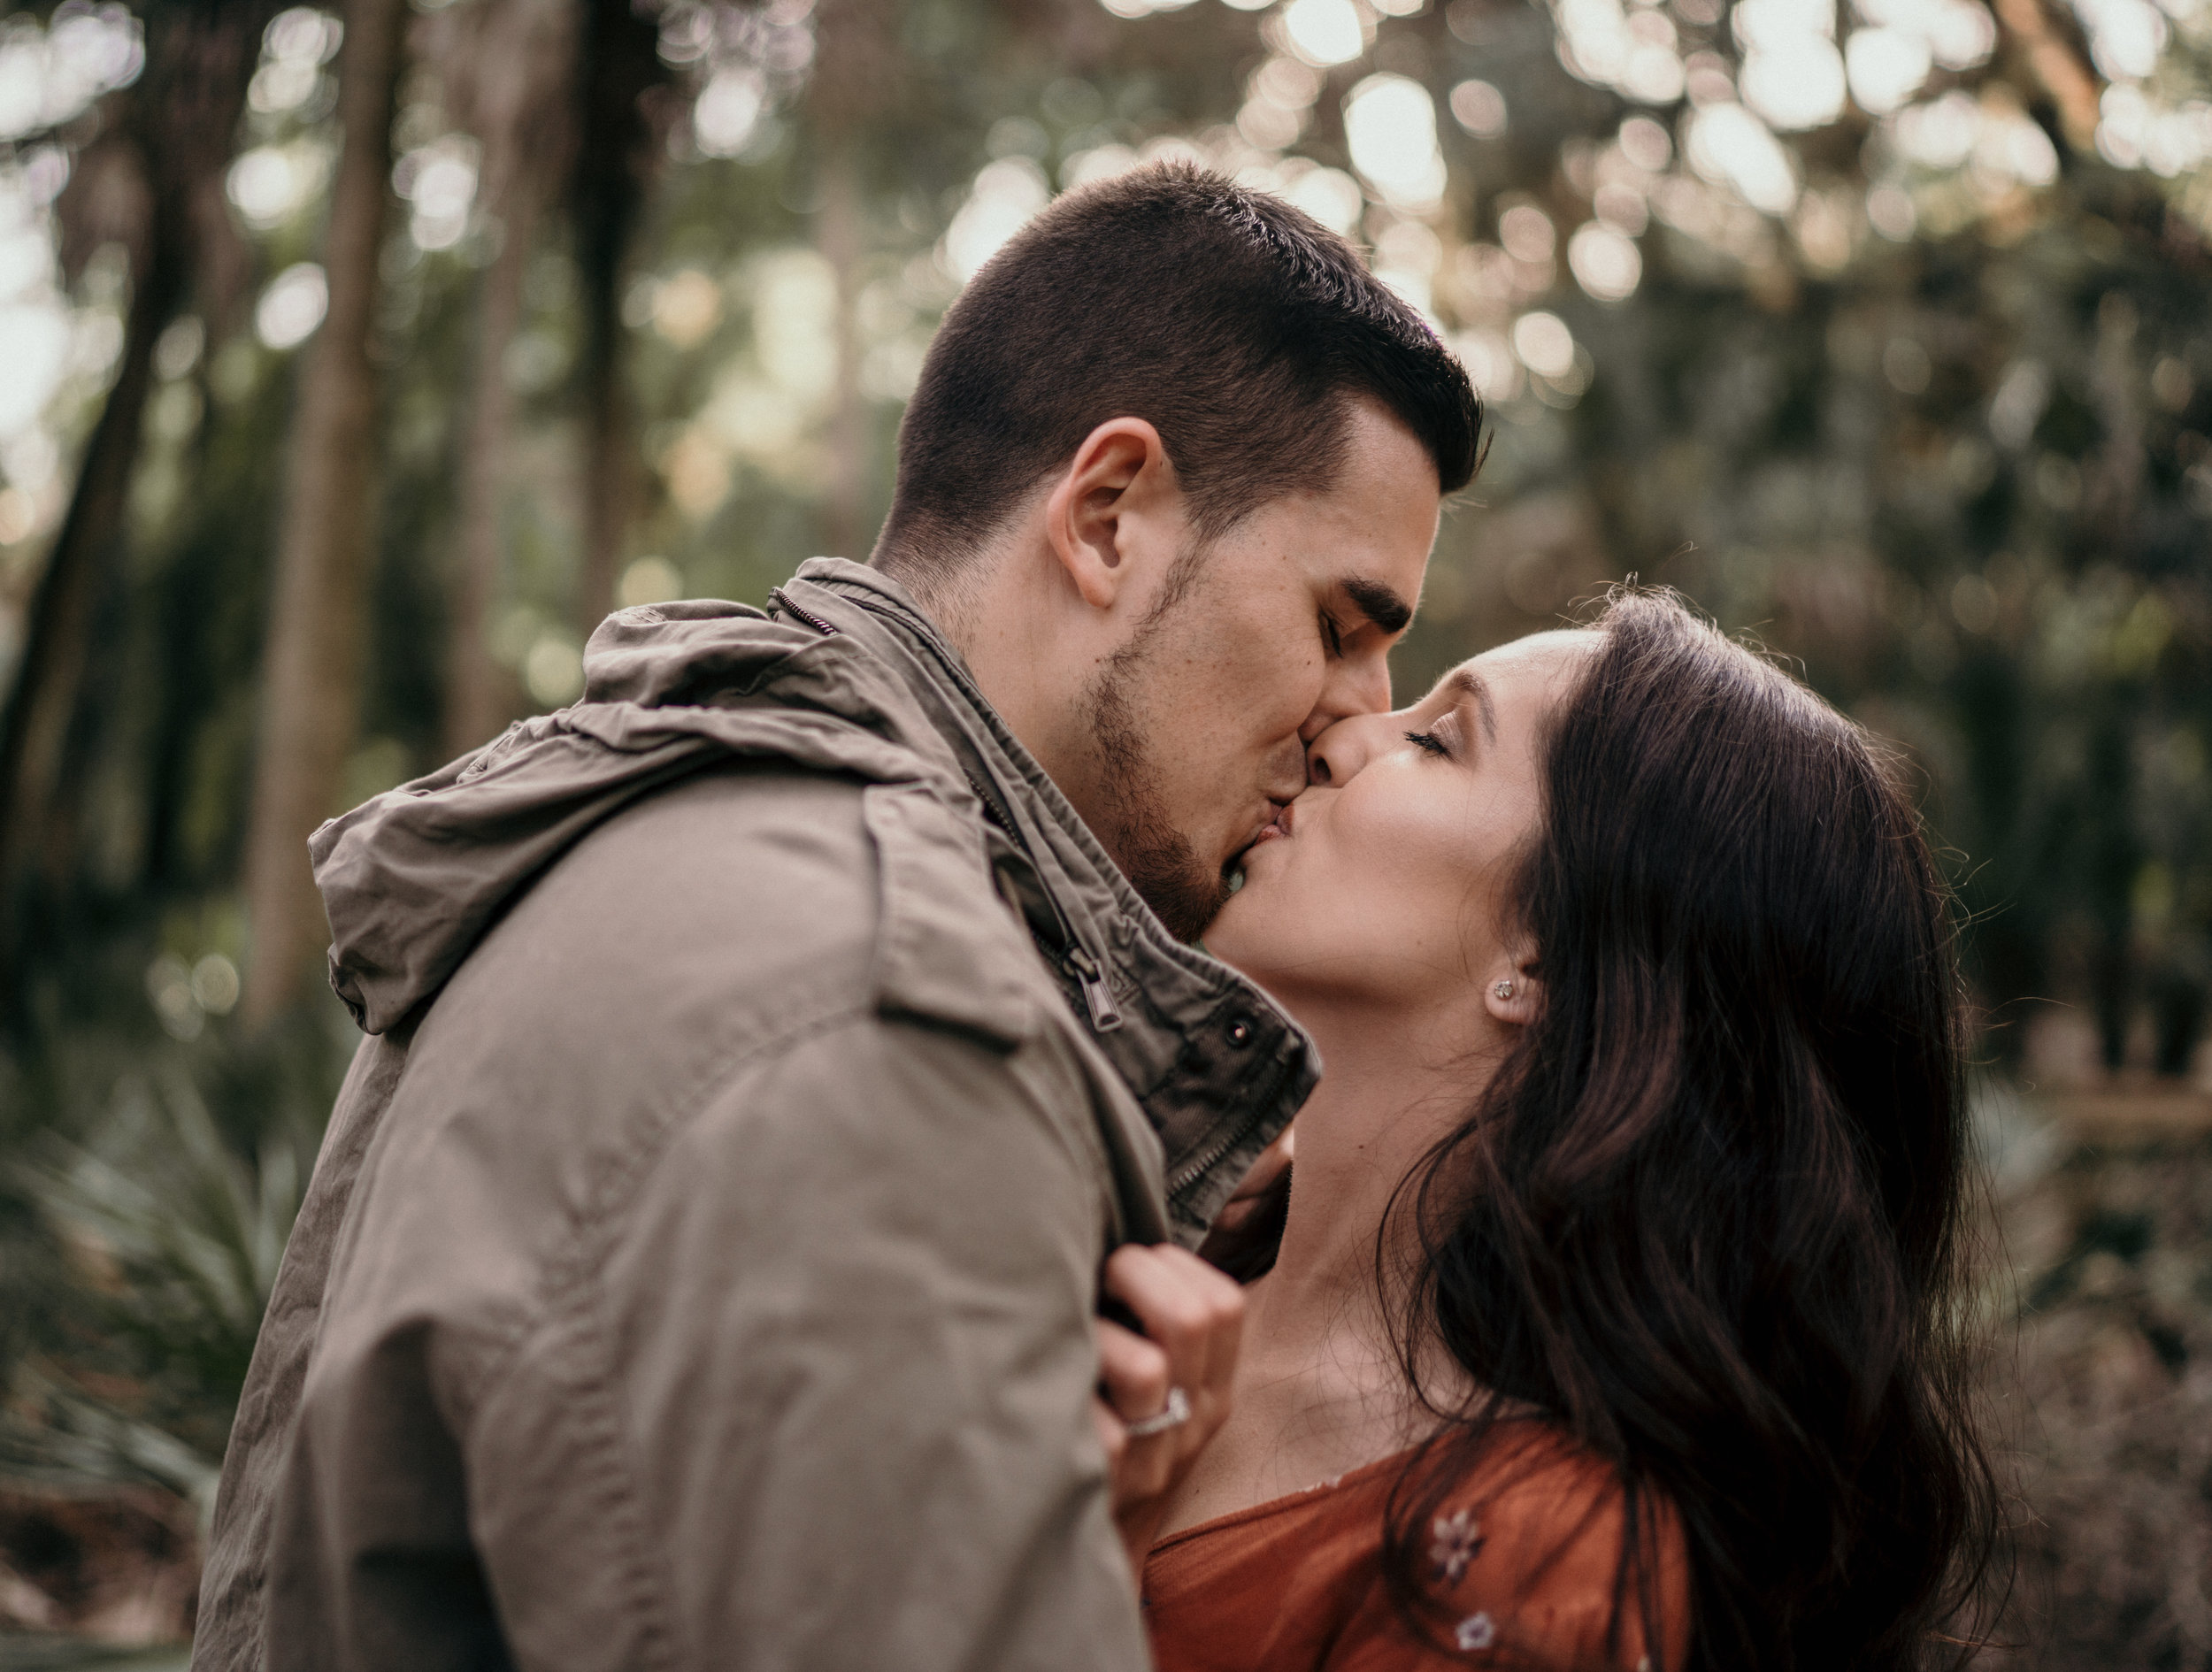 Ivy & Santy Engagement Shoot FINAL00272019.jpg